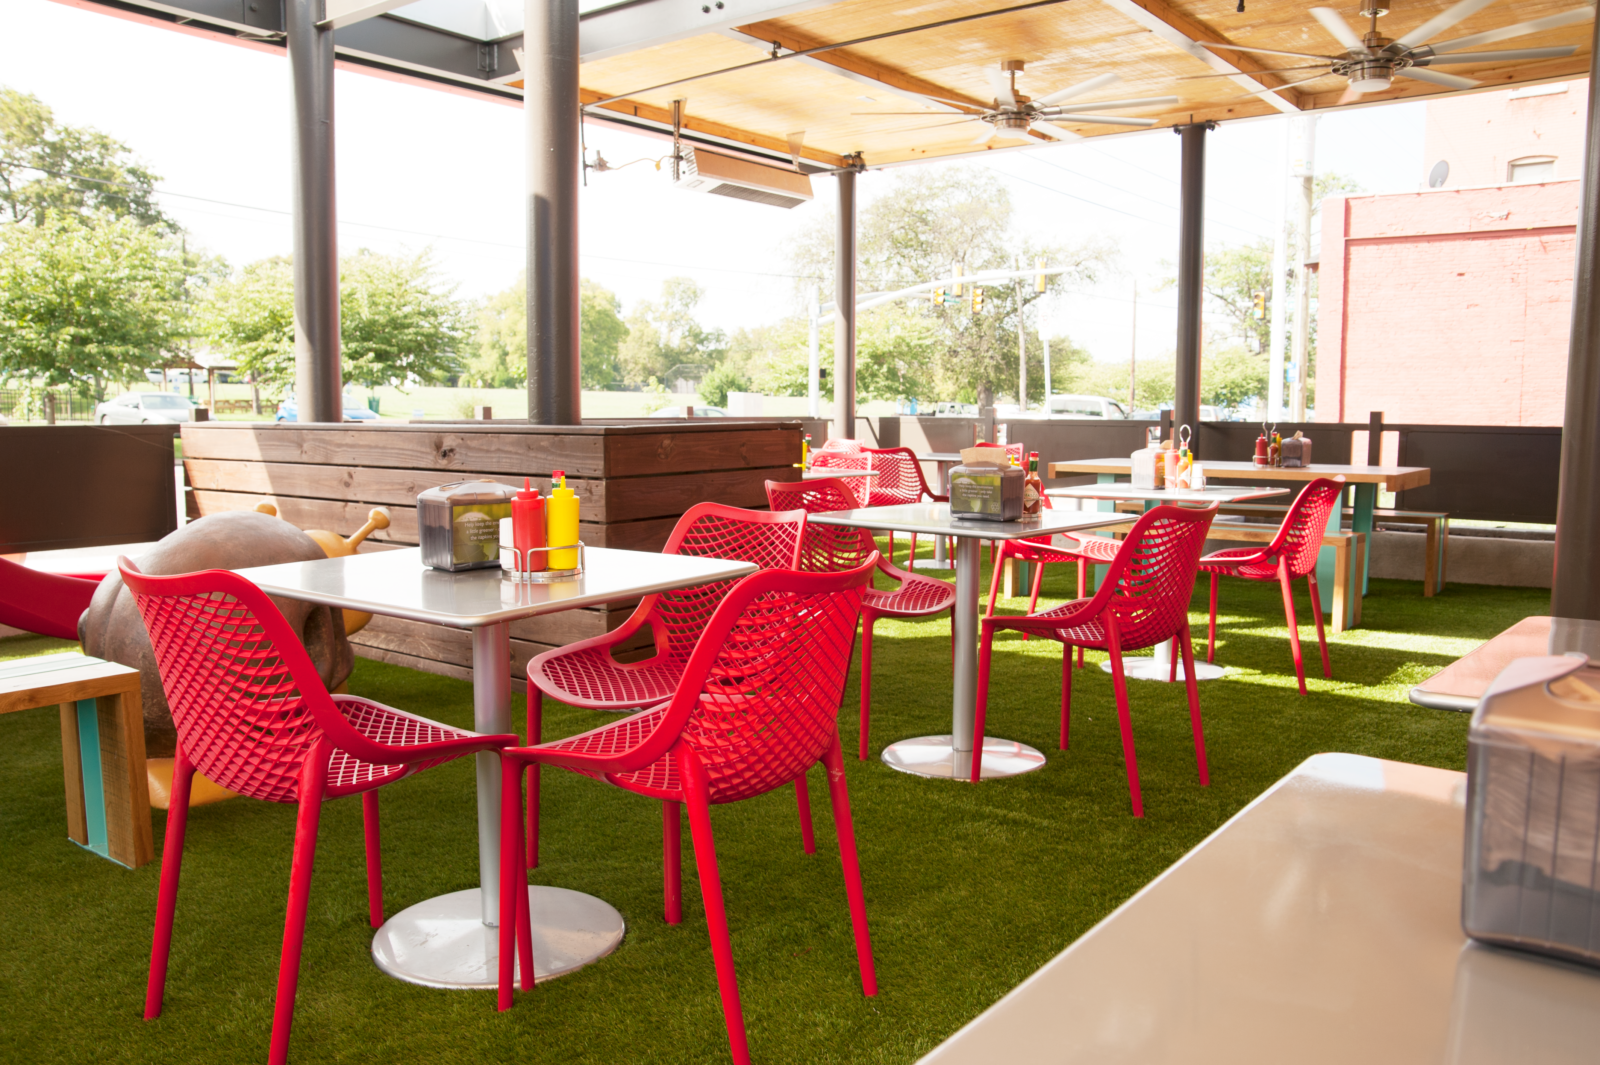 The outside patio with red chairs and green turf at Hugh Baby's